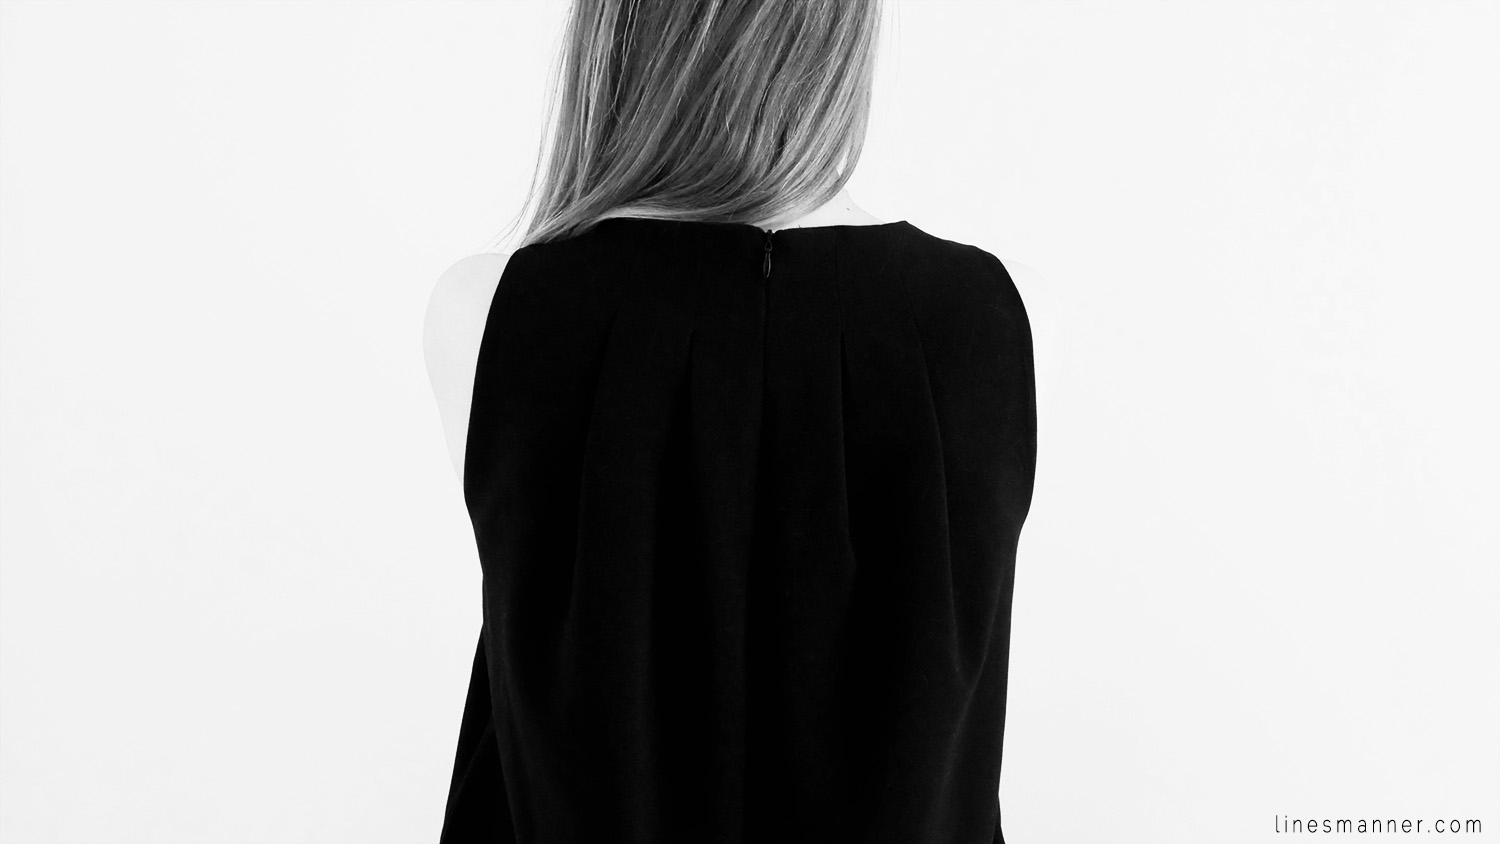 Lines-Manner-Remind-2015-Minimal-Essential-Outfit-Inspiration-Blog-Timeless-Year-Seasons-Details-Travel-Fashion-Versatile-Clean-Sleek-Quality-55